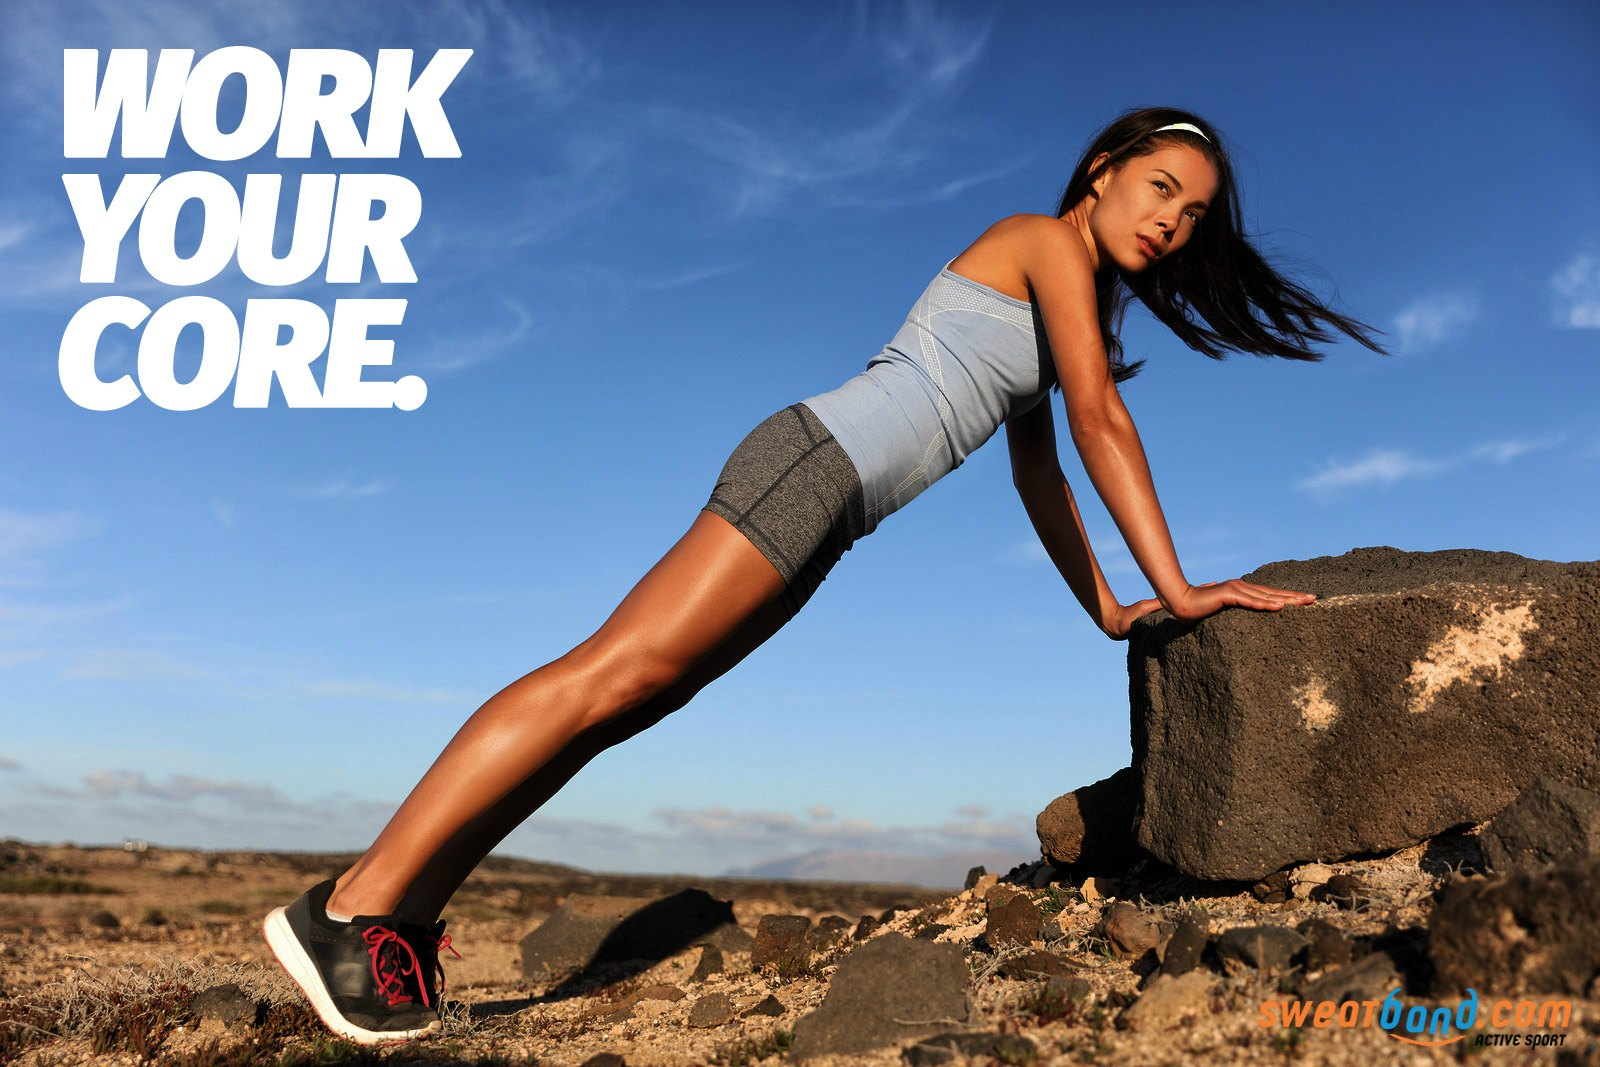 Having stronger core muscles is proven to help improve running performance